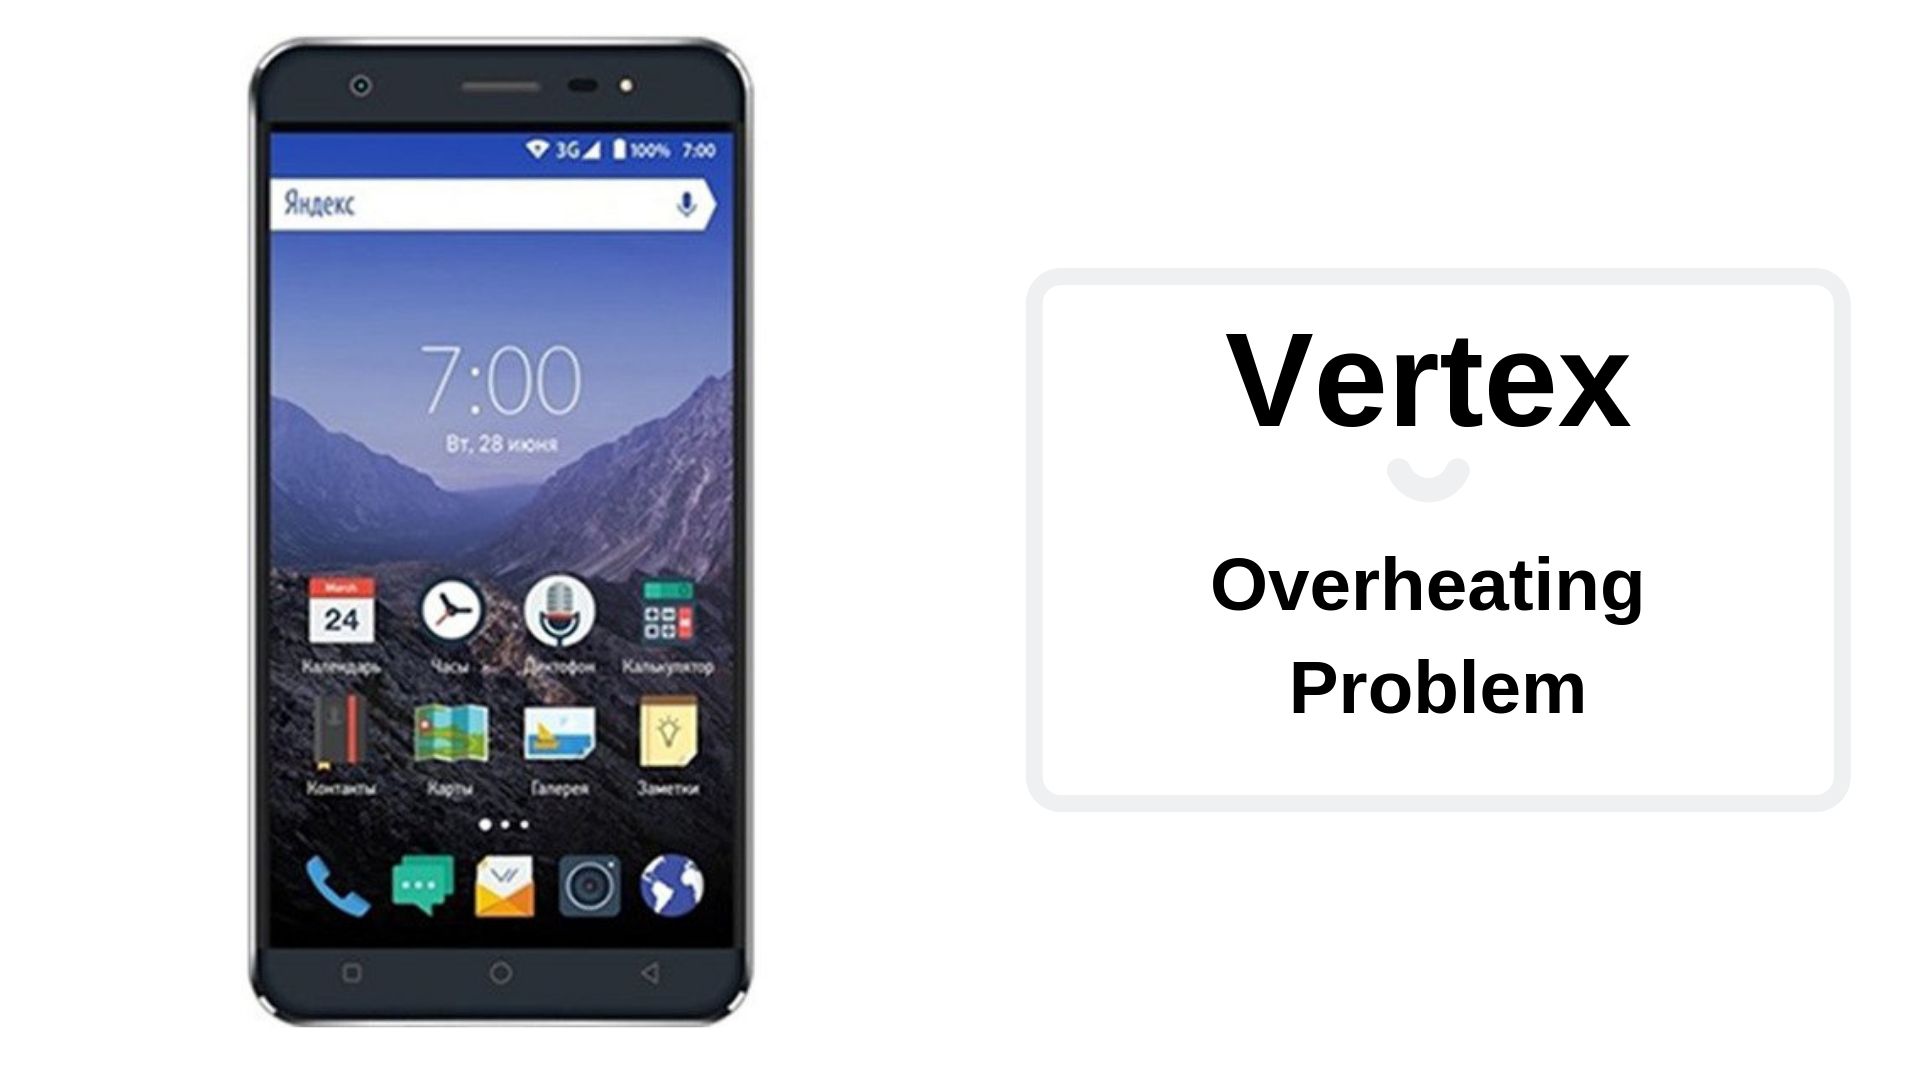 How To Fix Vertex Overheating Problem - Troubleshooting Fix & Tips